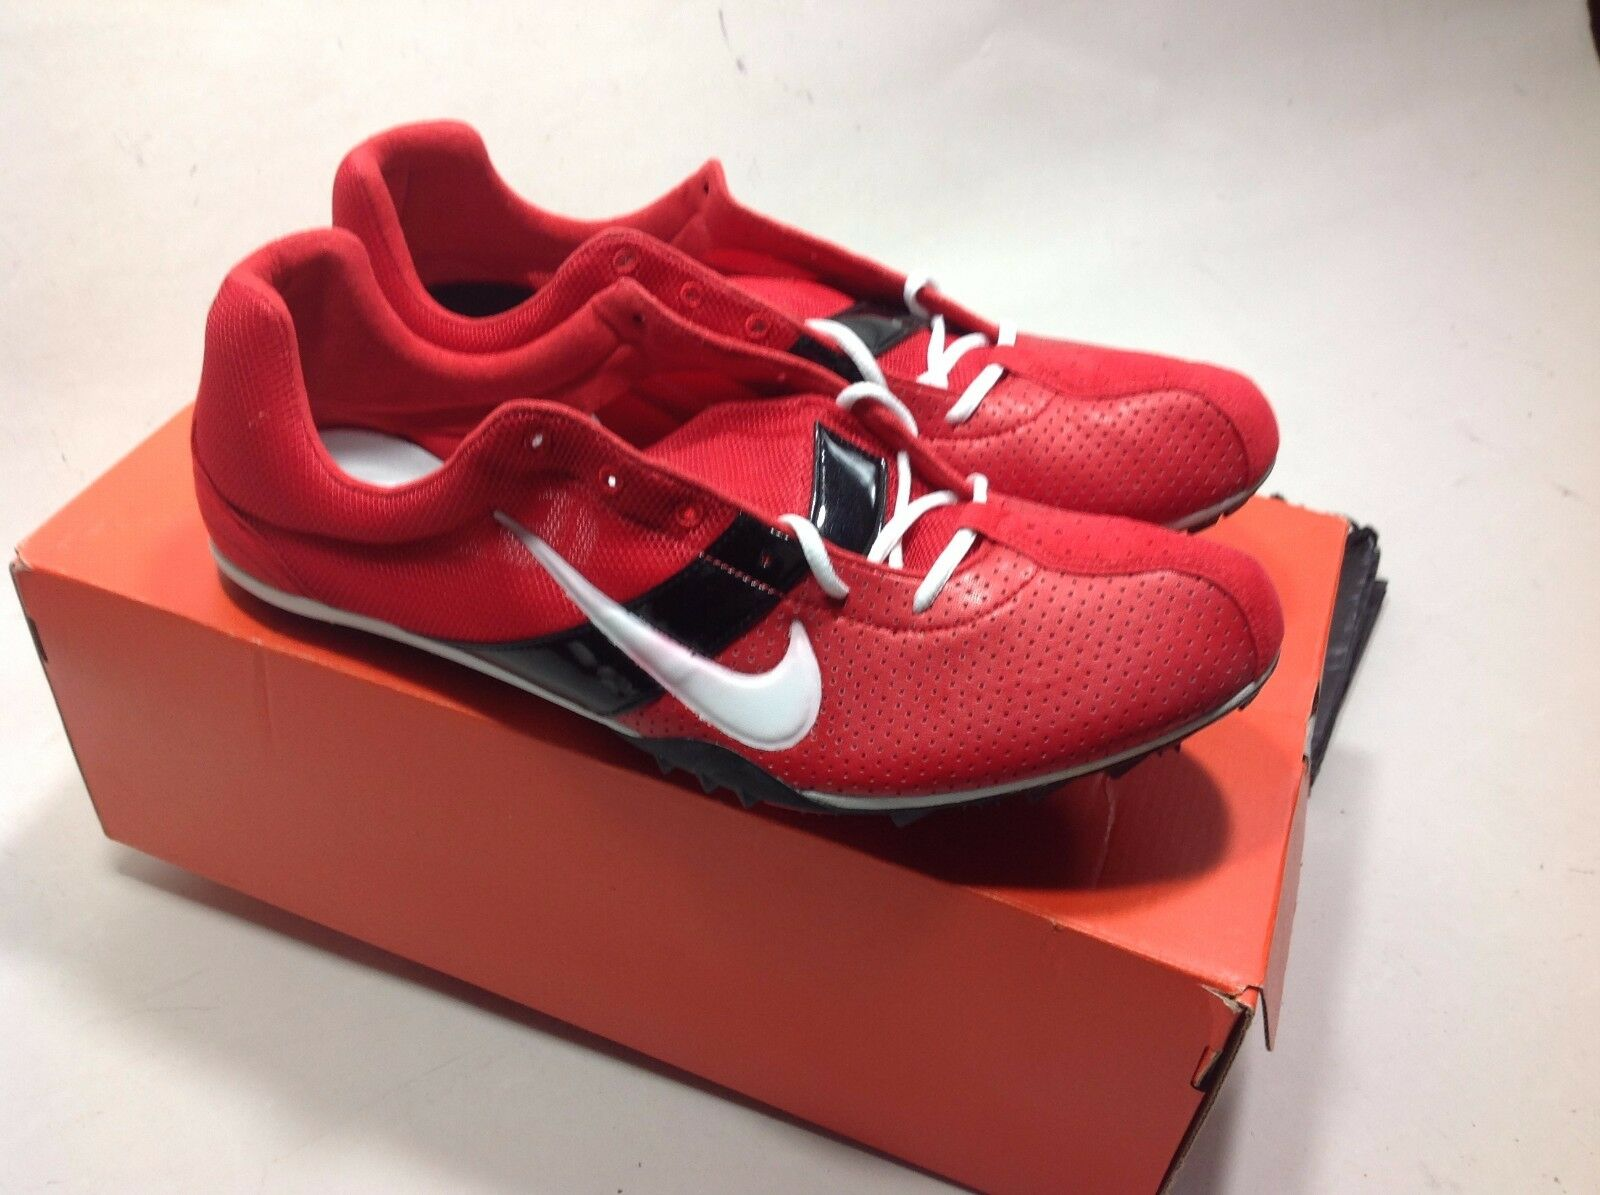 582768747c731 ... Track Spikes NEW redwhiteblack us size 15  Nike Air Zoom Miler Training  Running Shoes  res.content.global.inflow.inflowcomponent.technicalissues ...